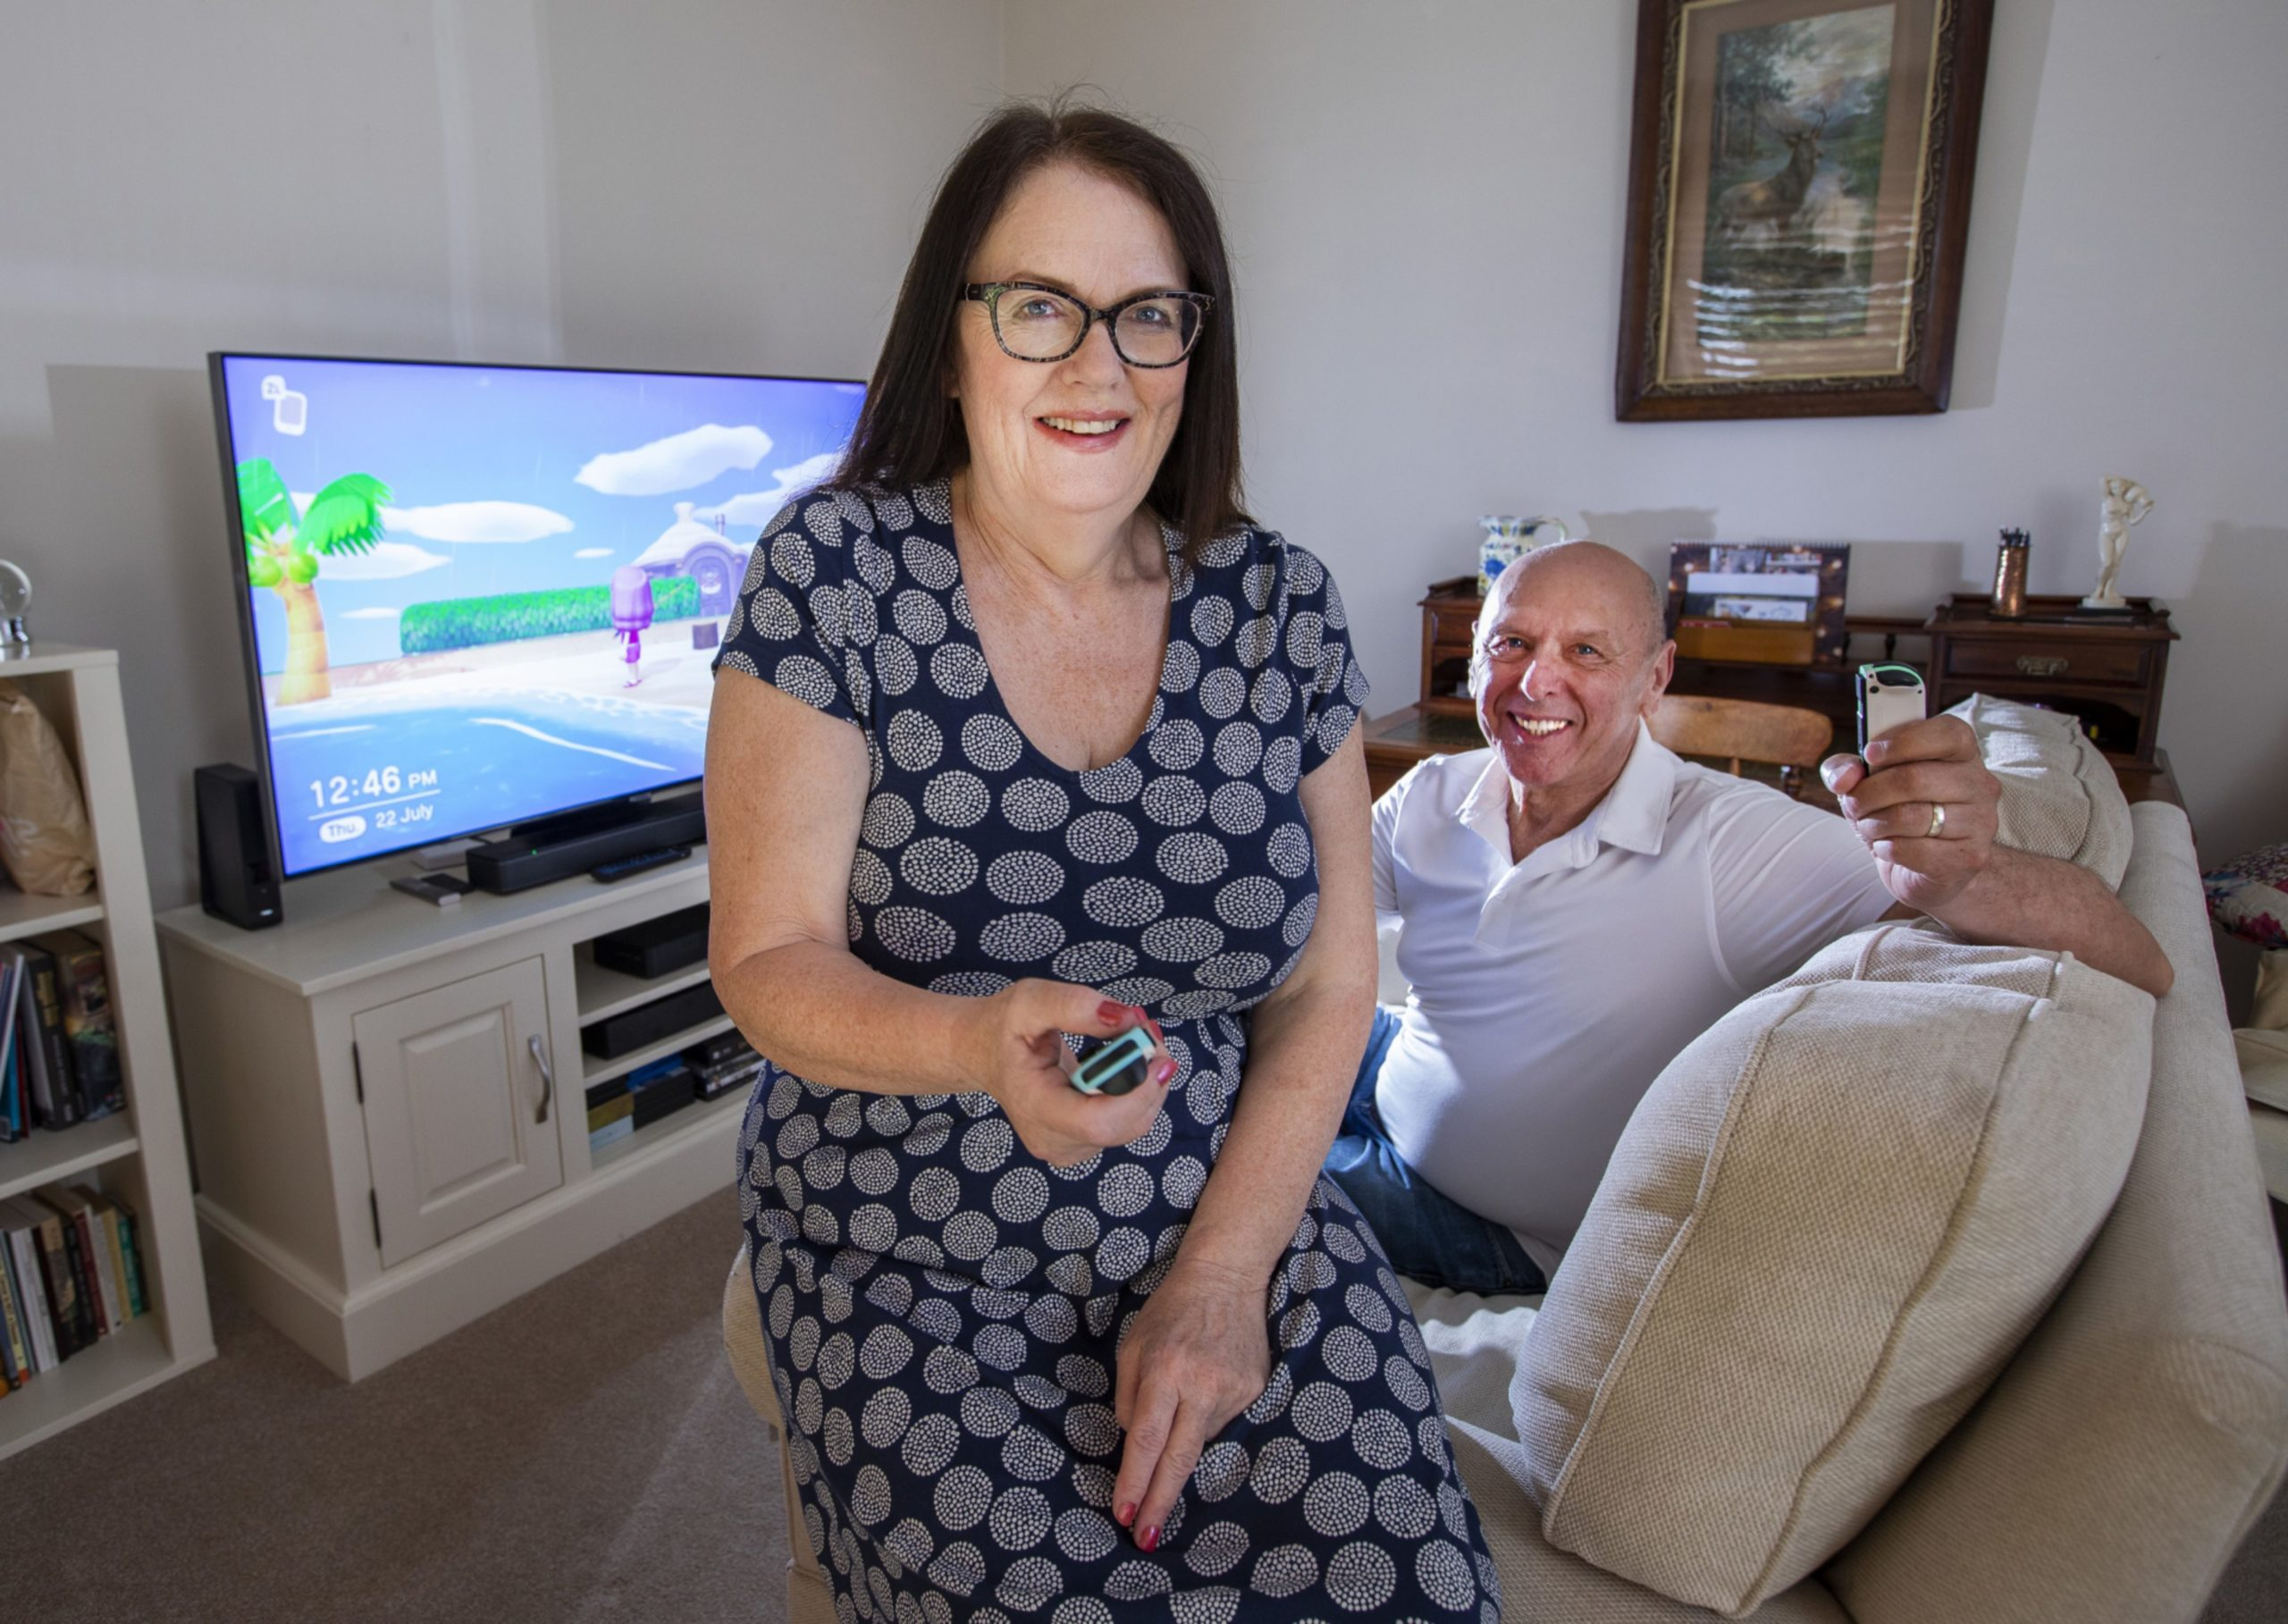 Jenny and Terry play Animal Crossing on their Nintendo Switch